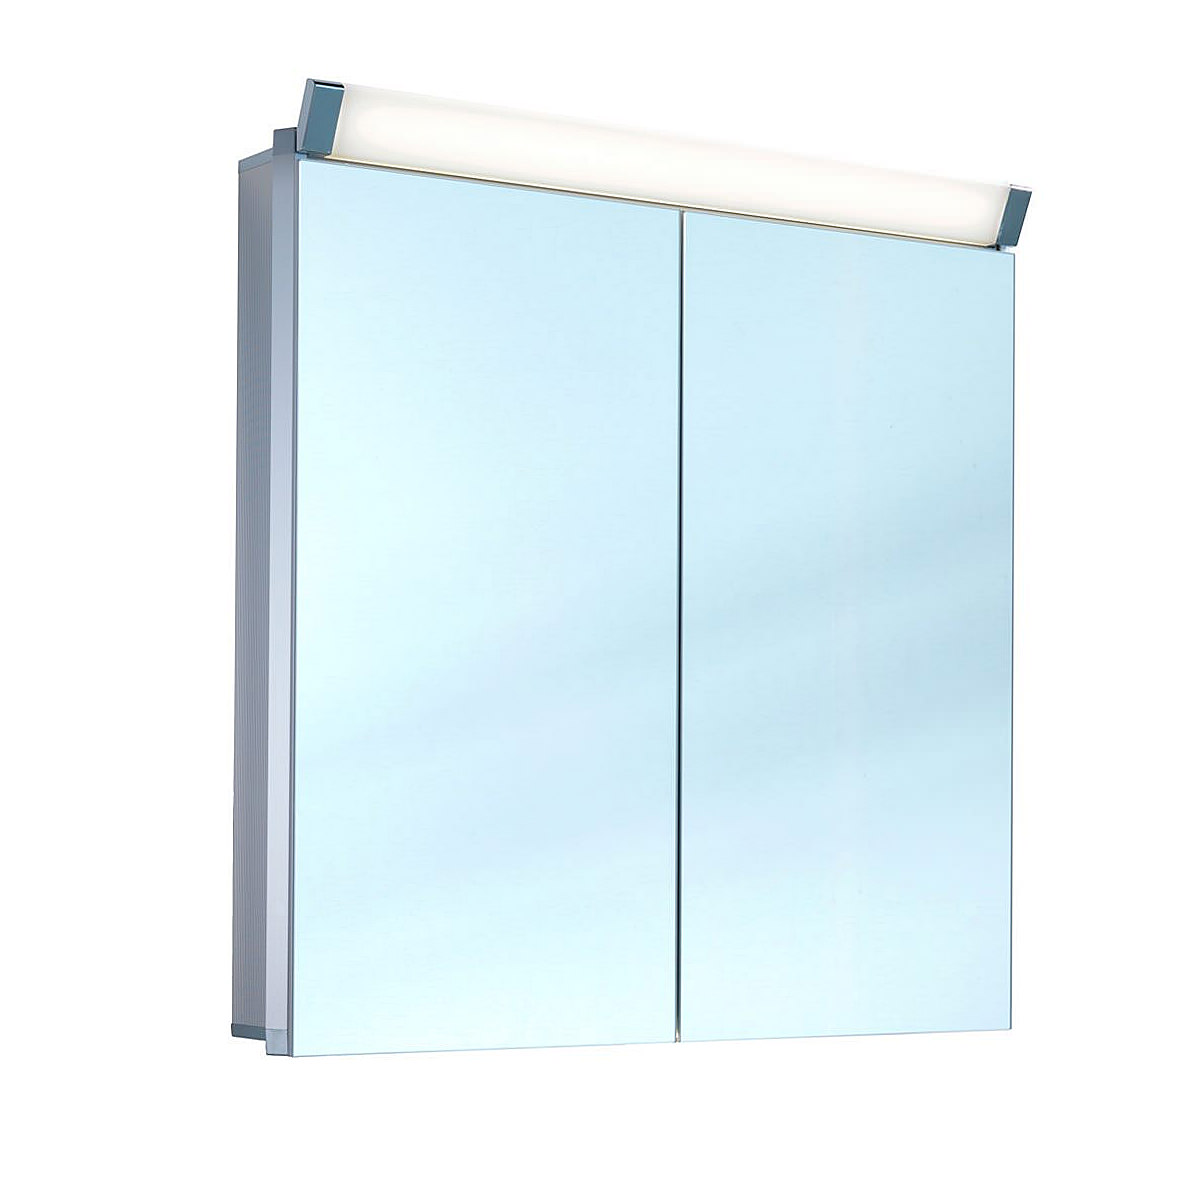 Schneider paliline 2 door mirror cabinet with led light 1200mm for Bathroom cabinets 1200mm wide